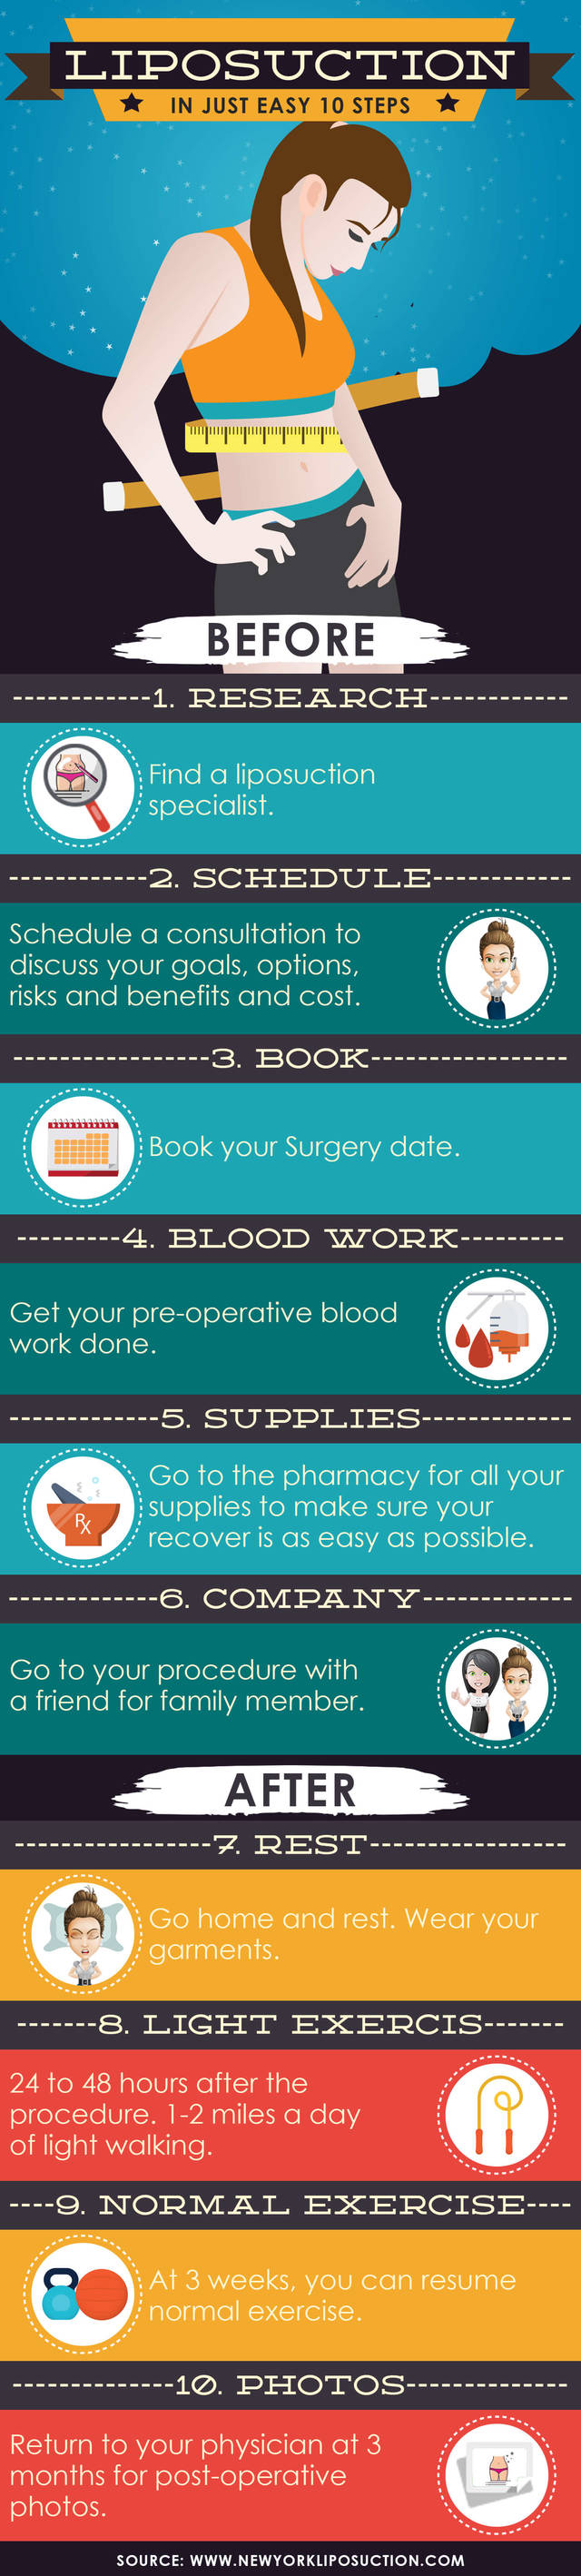 Liposuction in just easy 10 steps